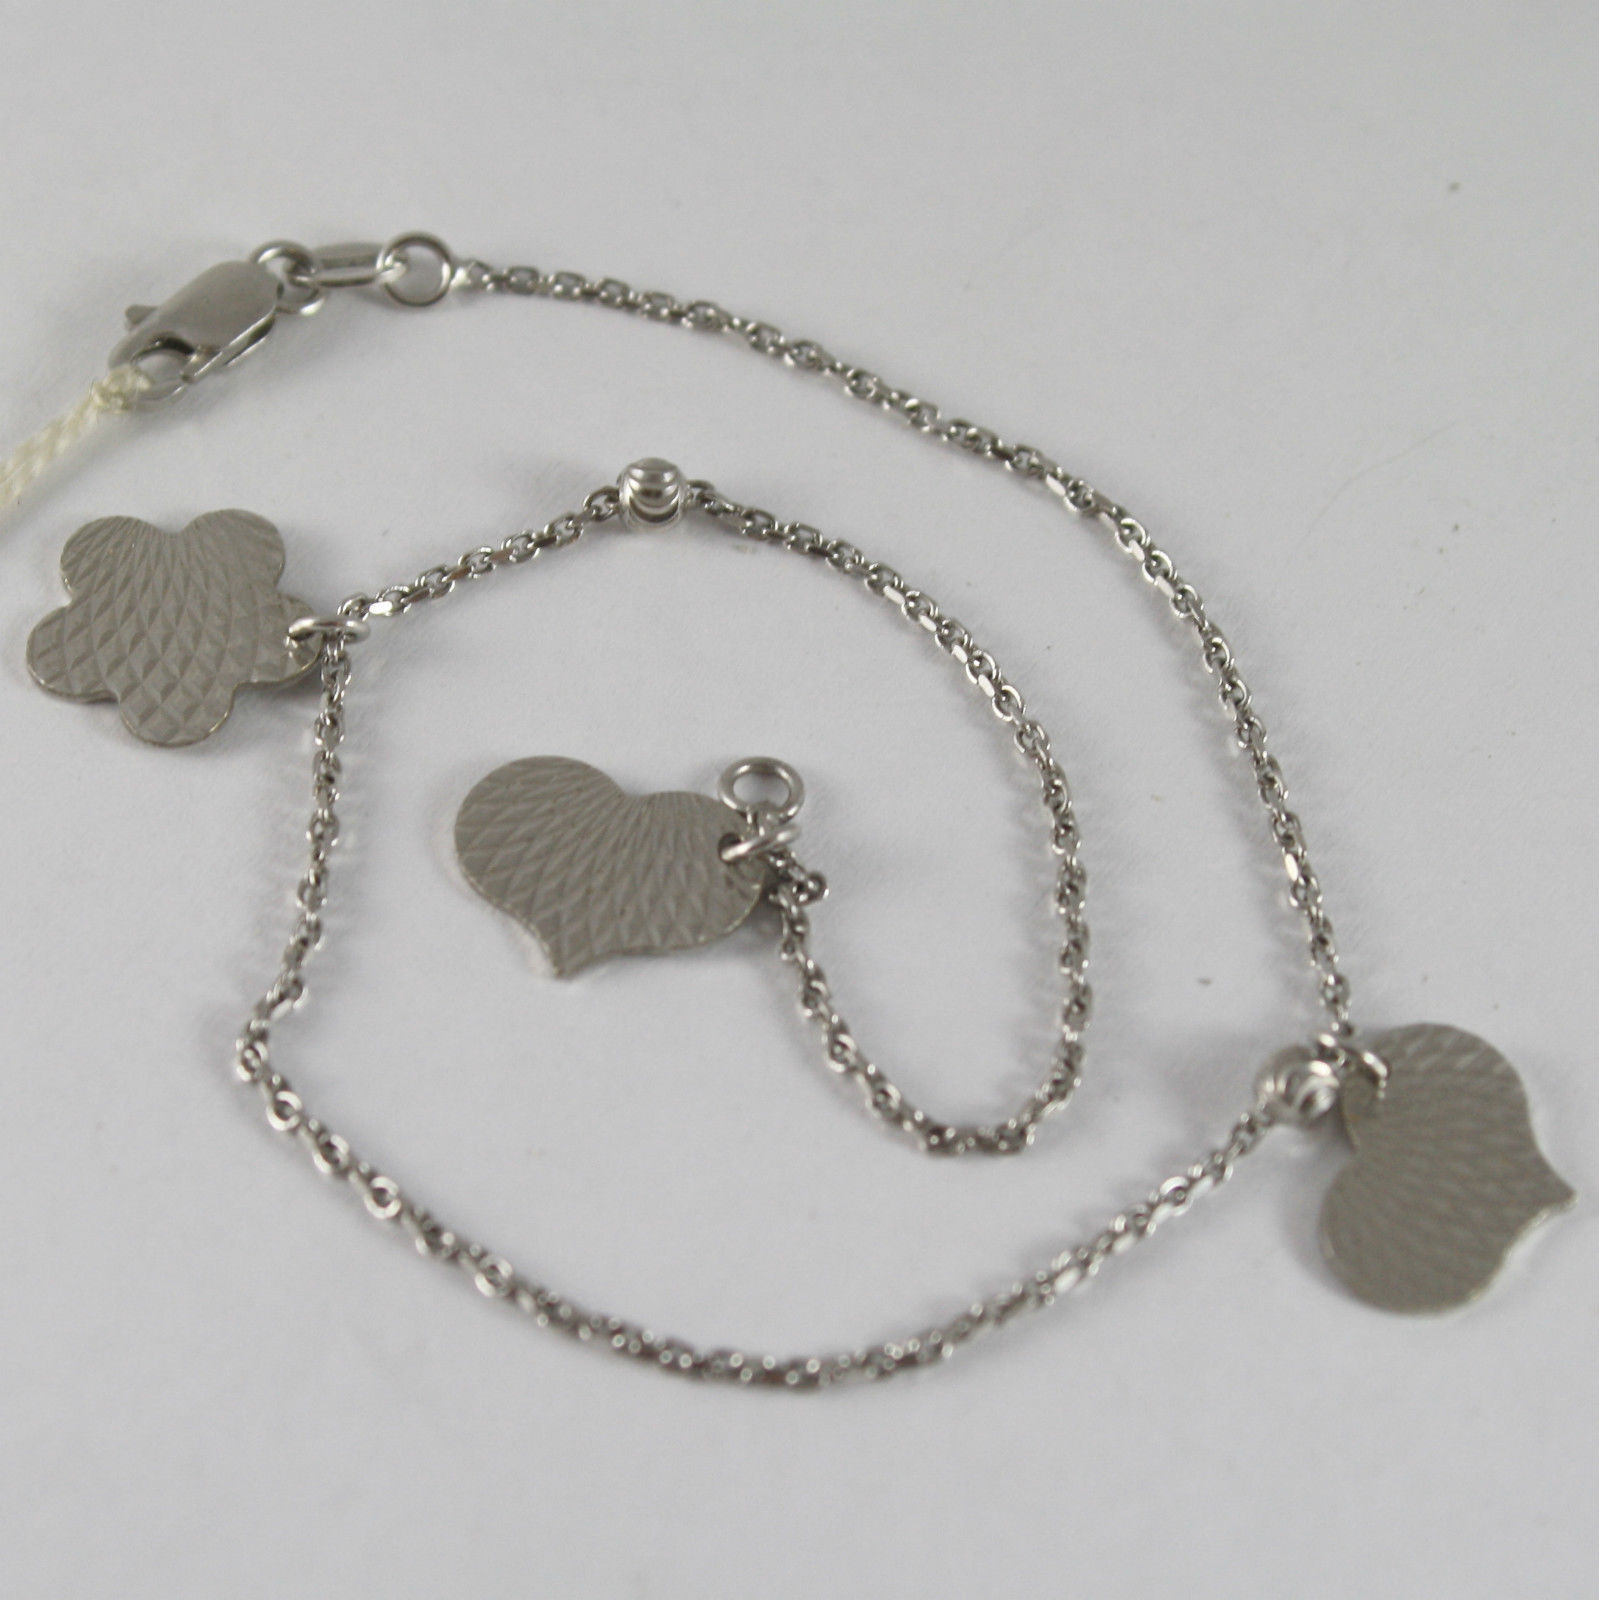 SOLID 18K WHITE GOLD BRACELET - ANKLET WITH PENDANT HEART FLOWER, MADE IN ITALY